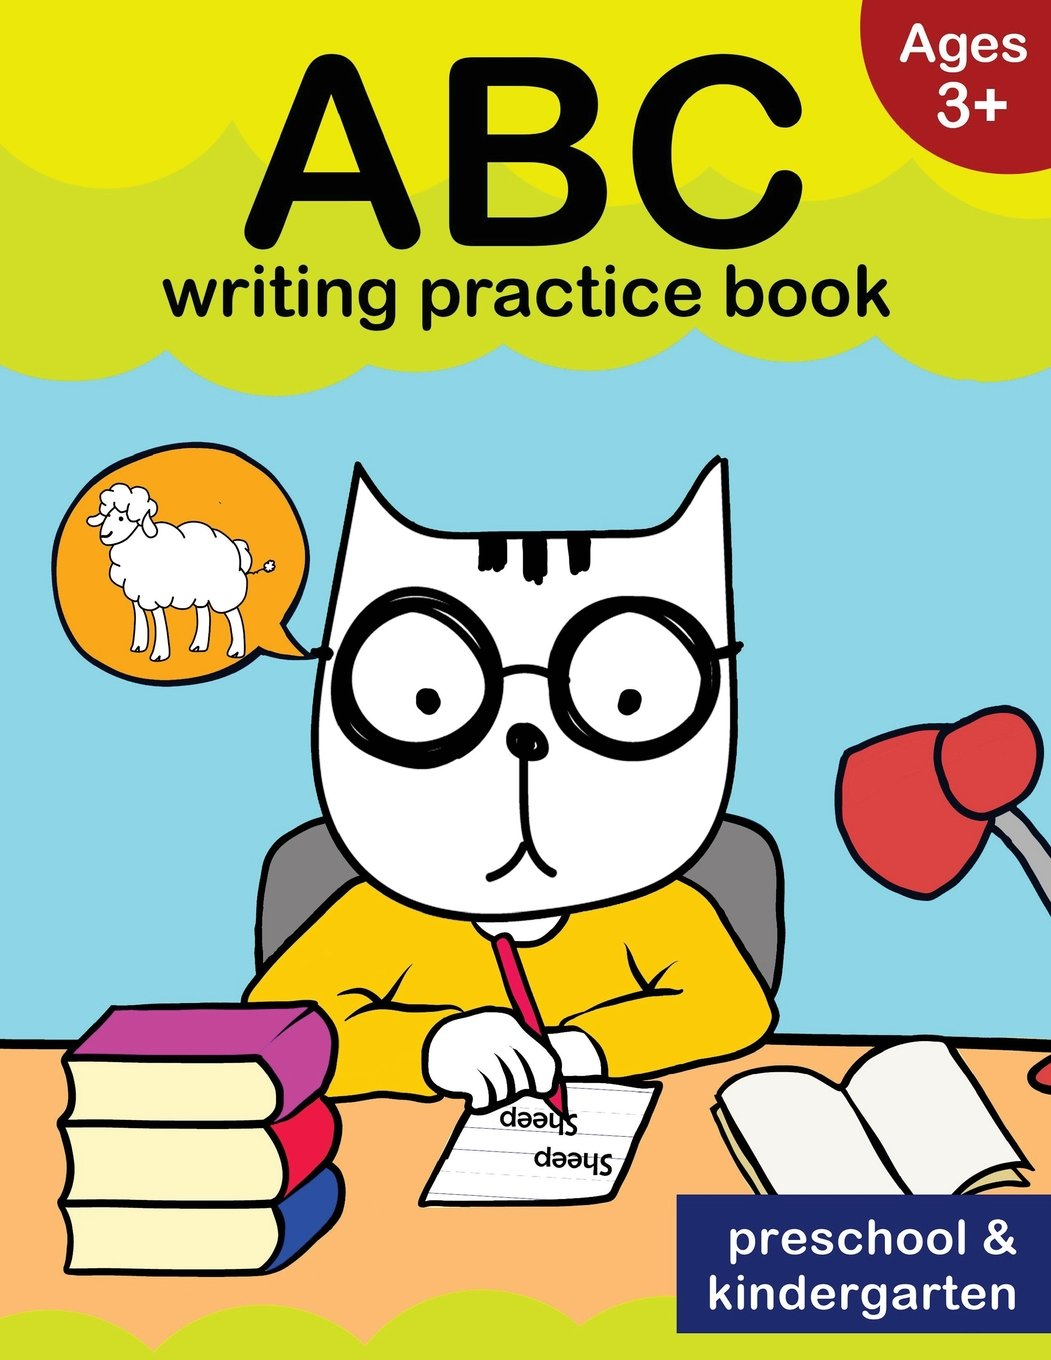 Amazon.com: ABC writing practice book: Ages 3+: letter tracing for ...